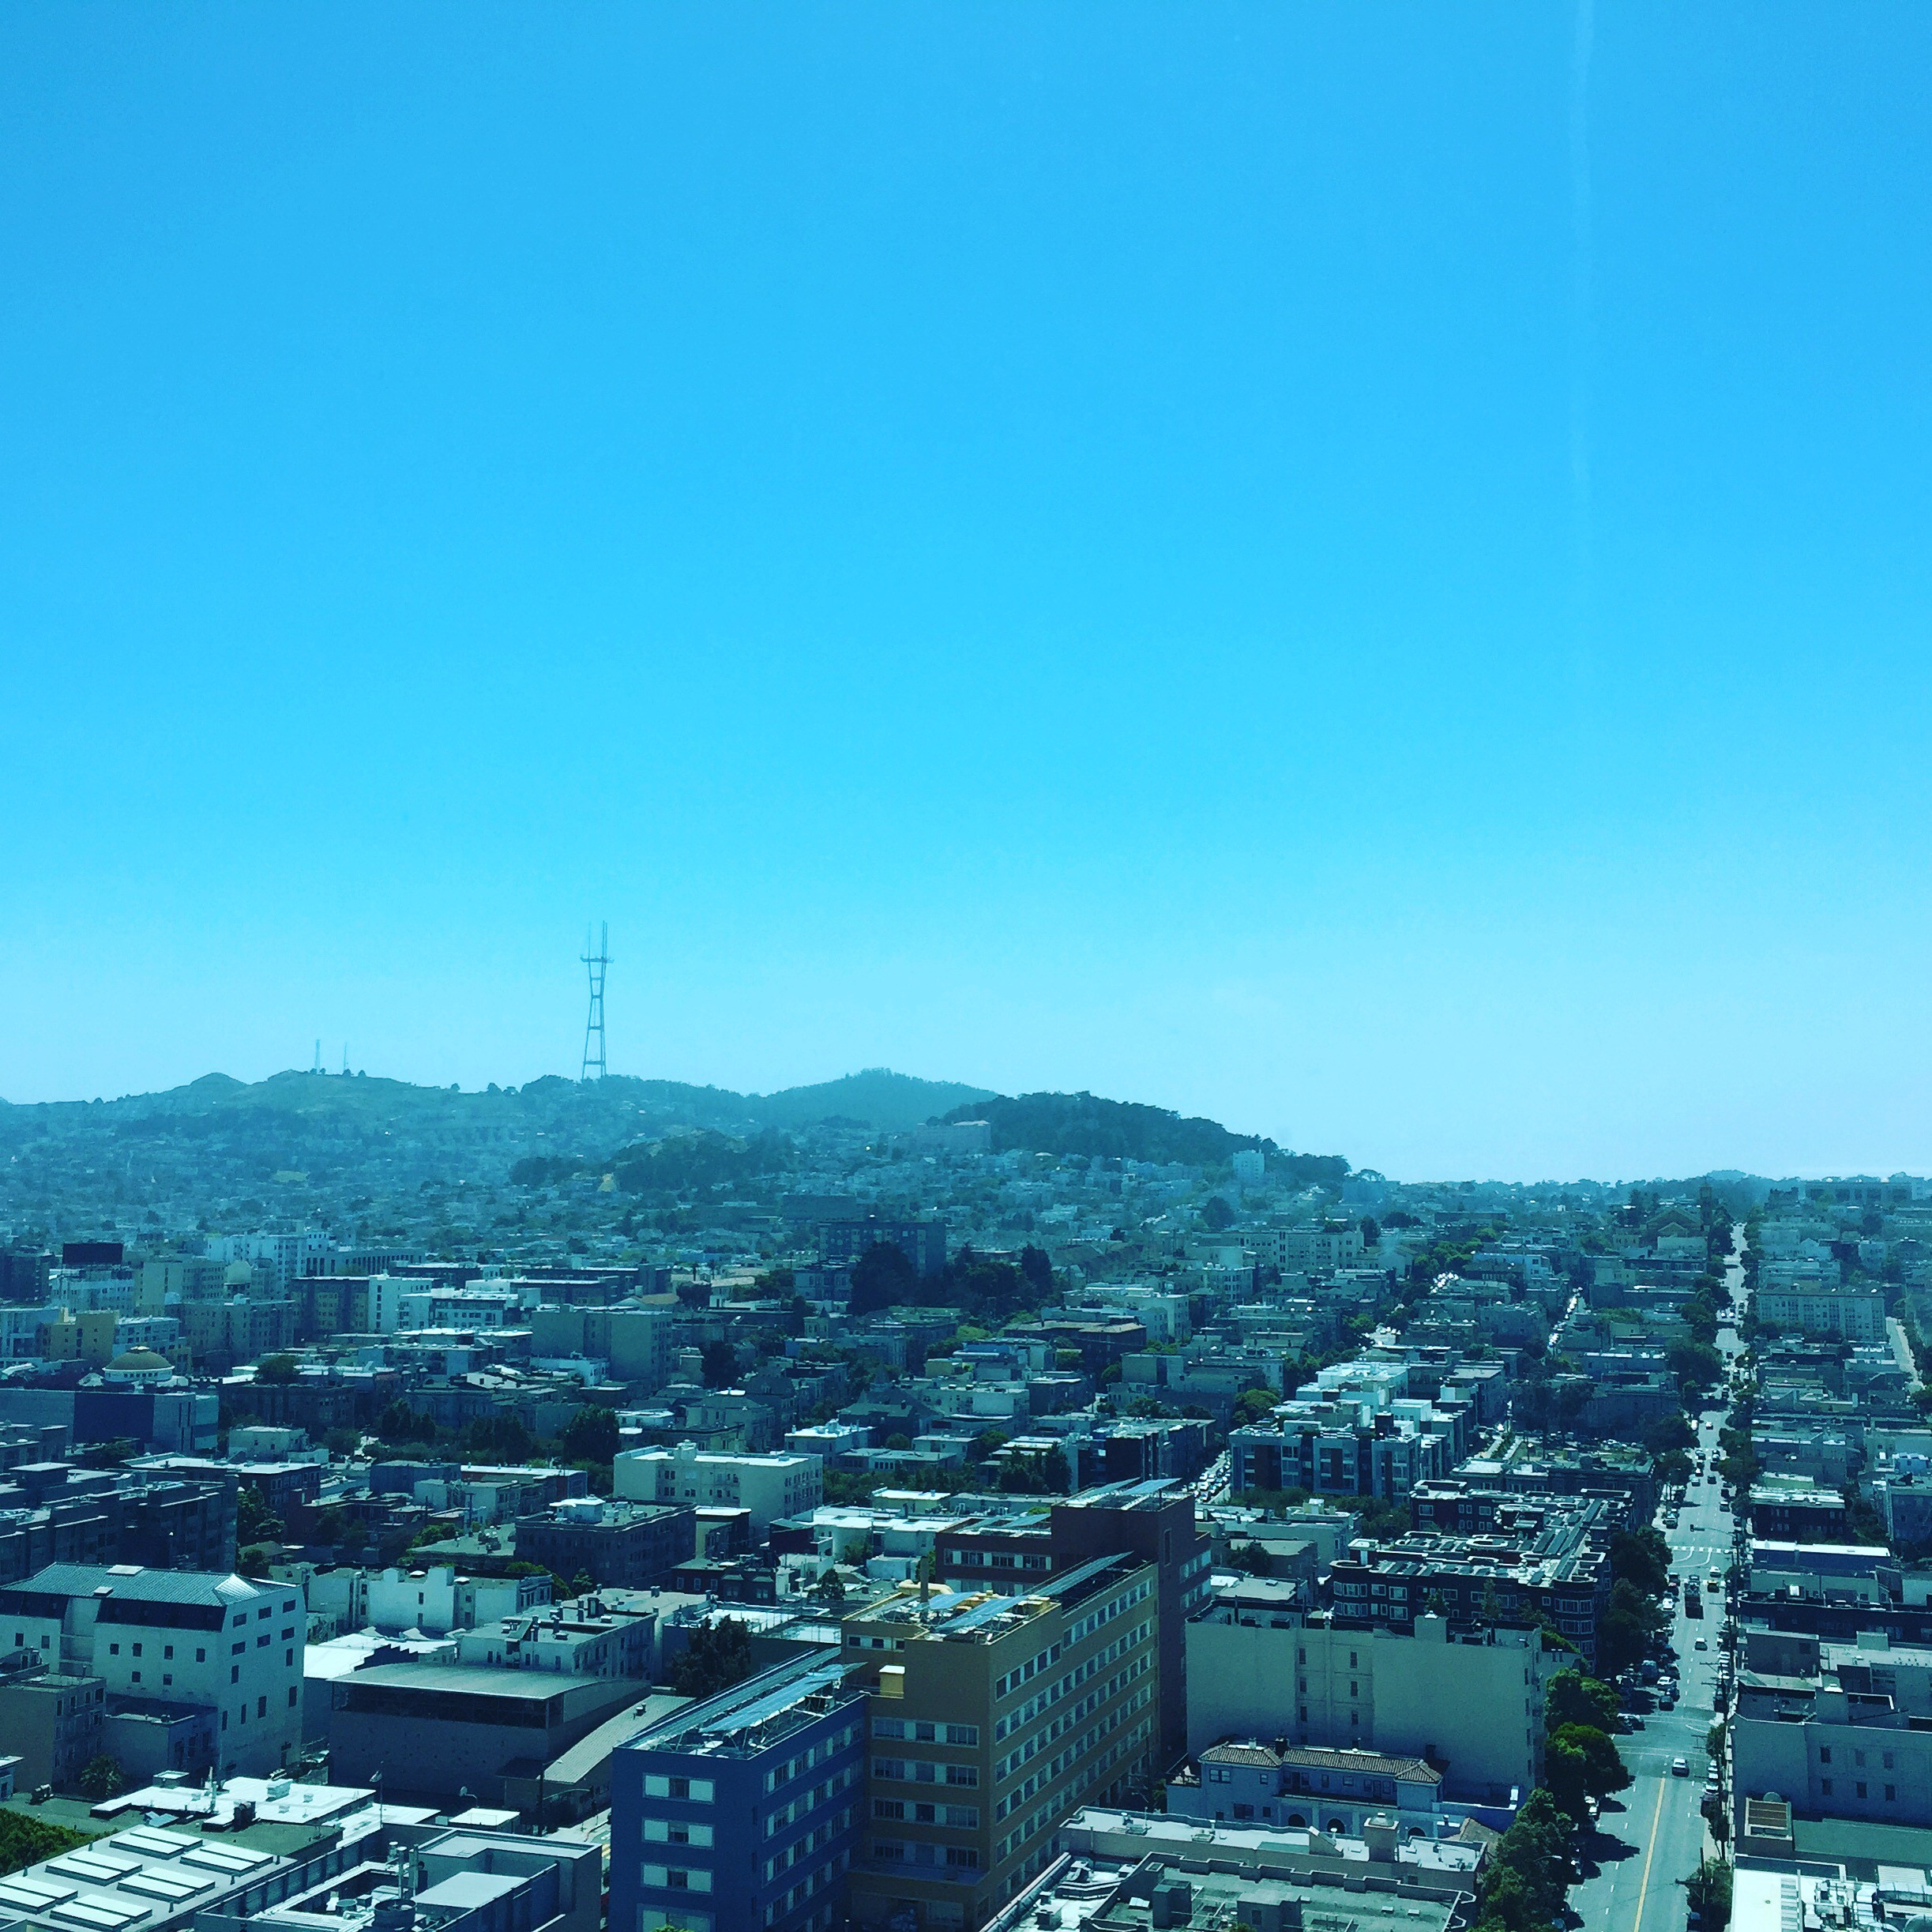 Densely clustered homes with a hillside in the background. Sutro Tower is at the top of the hill in the background.